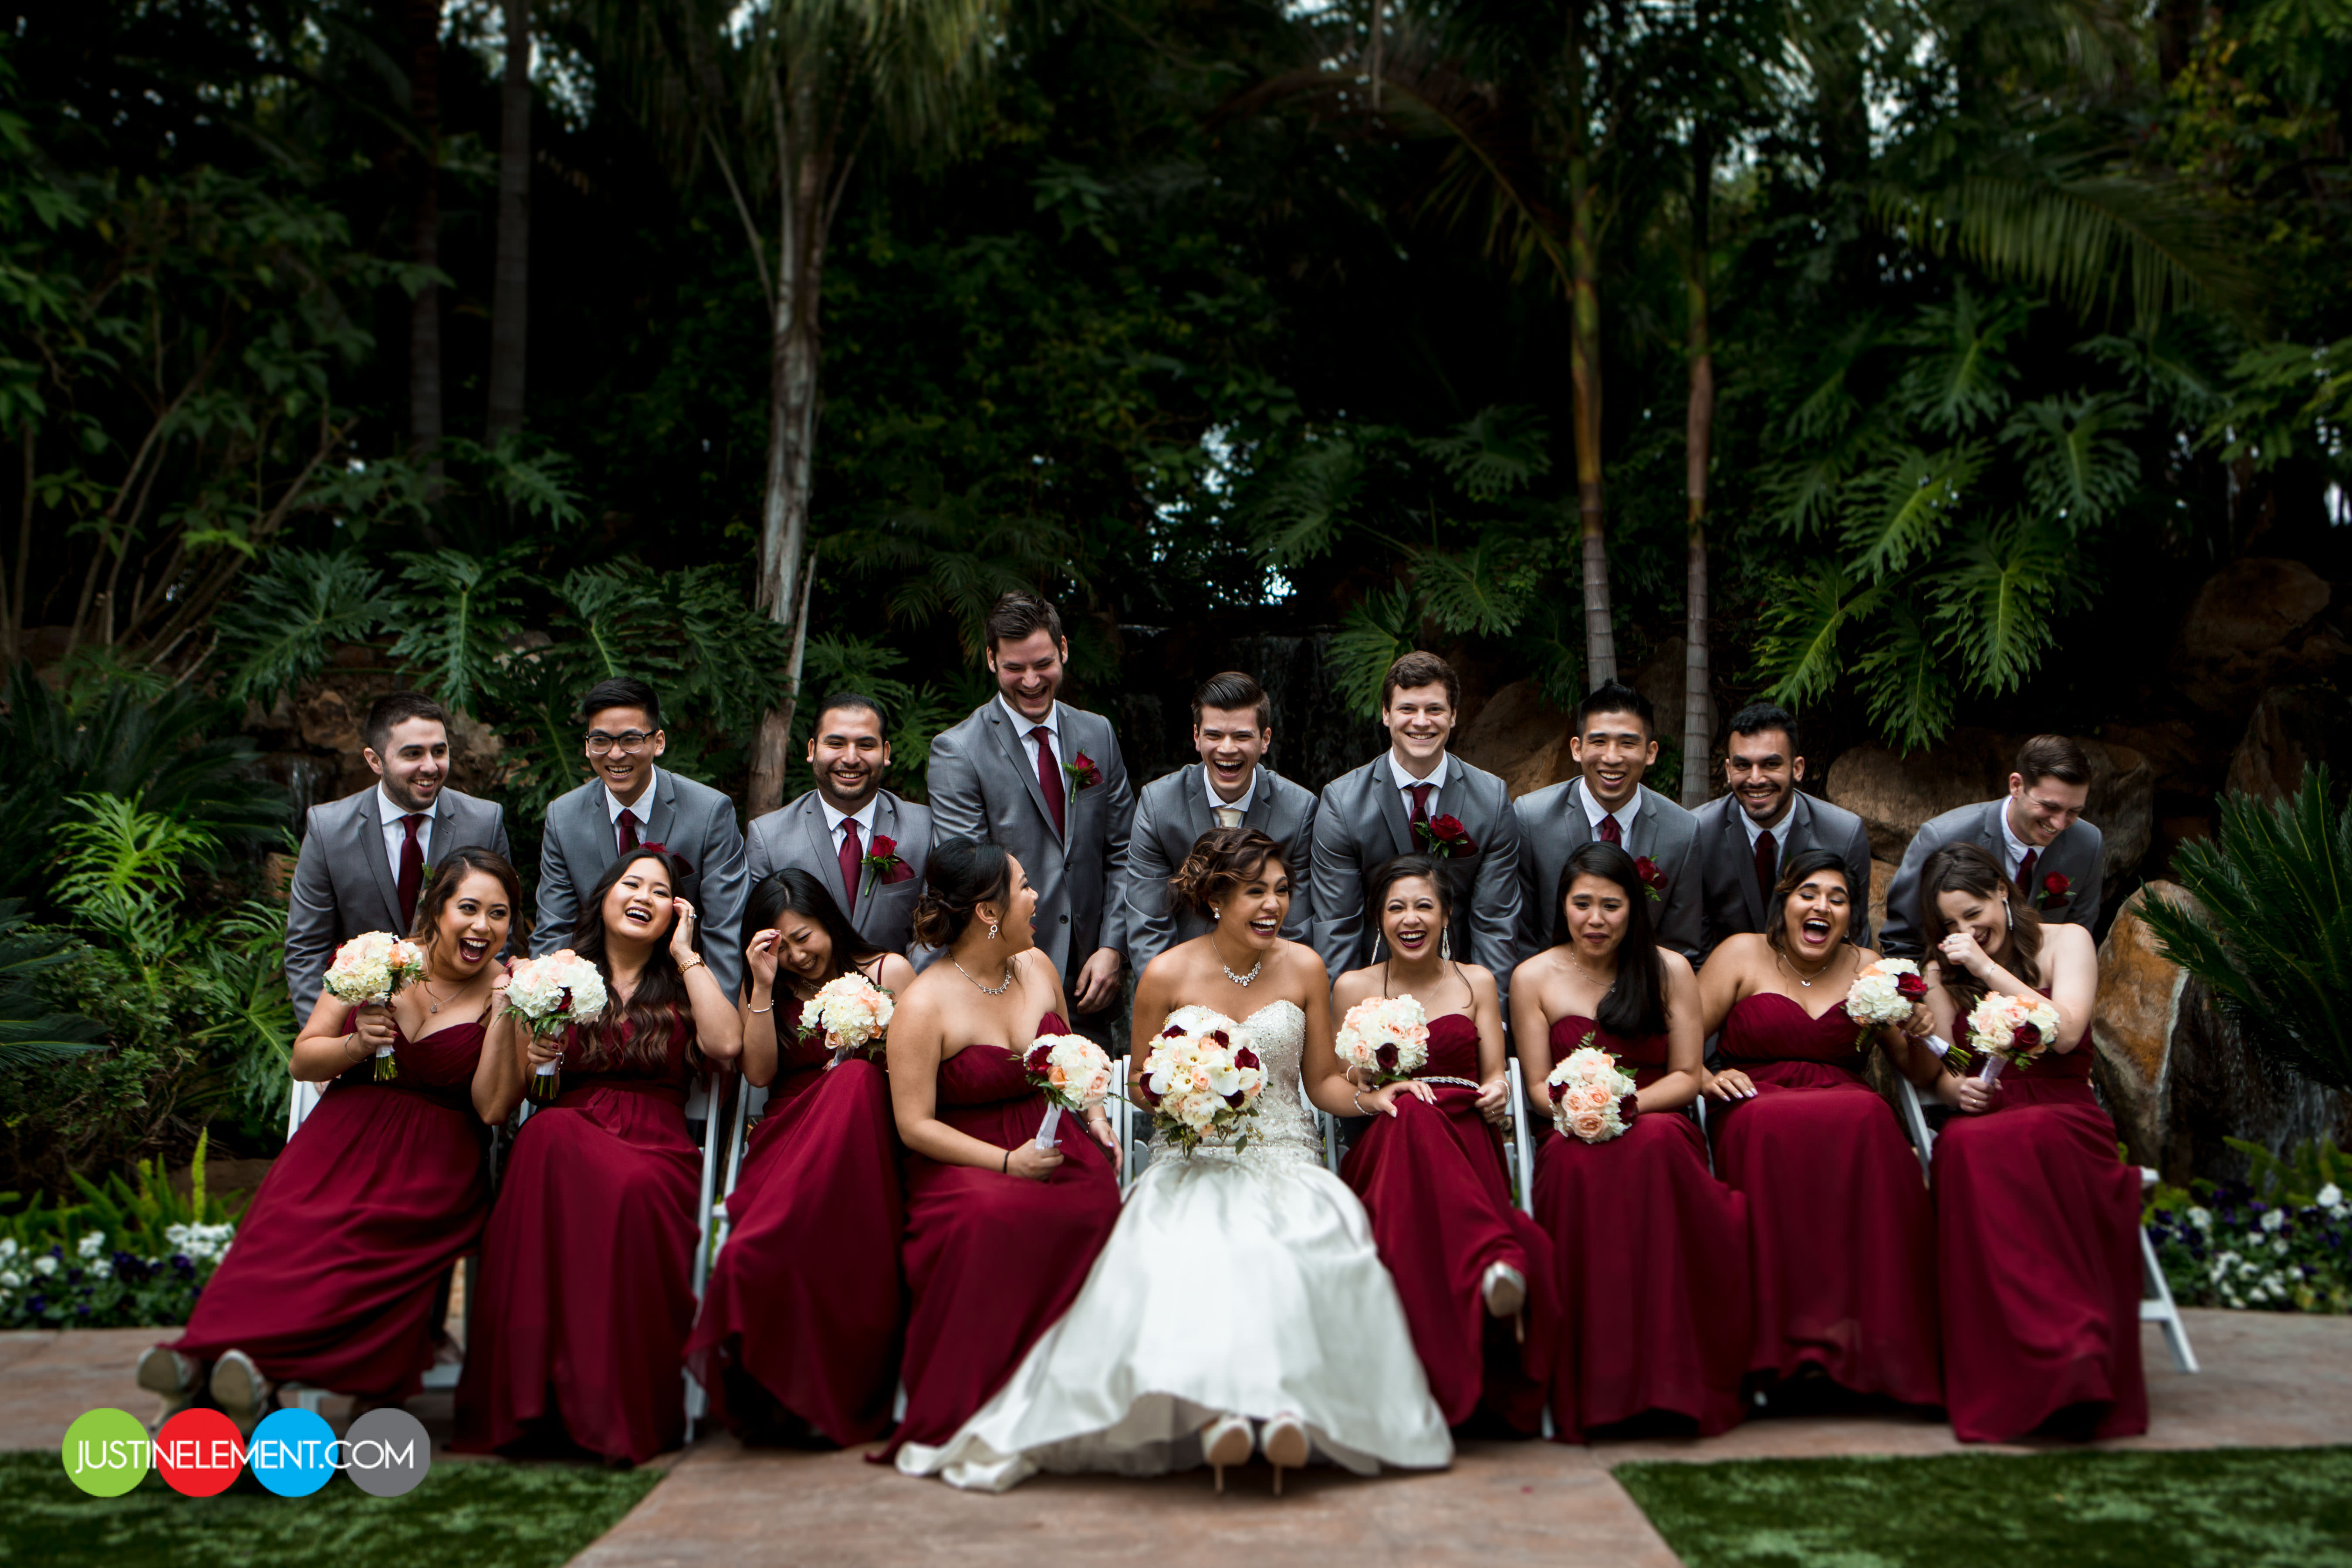 171 Best Images About Wedding Entourage On Pinterest: Pictures Of Brides And Grooms